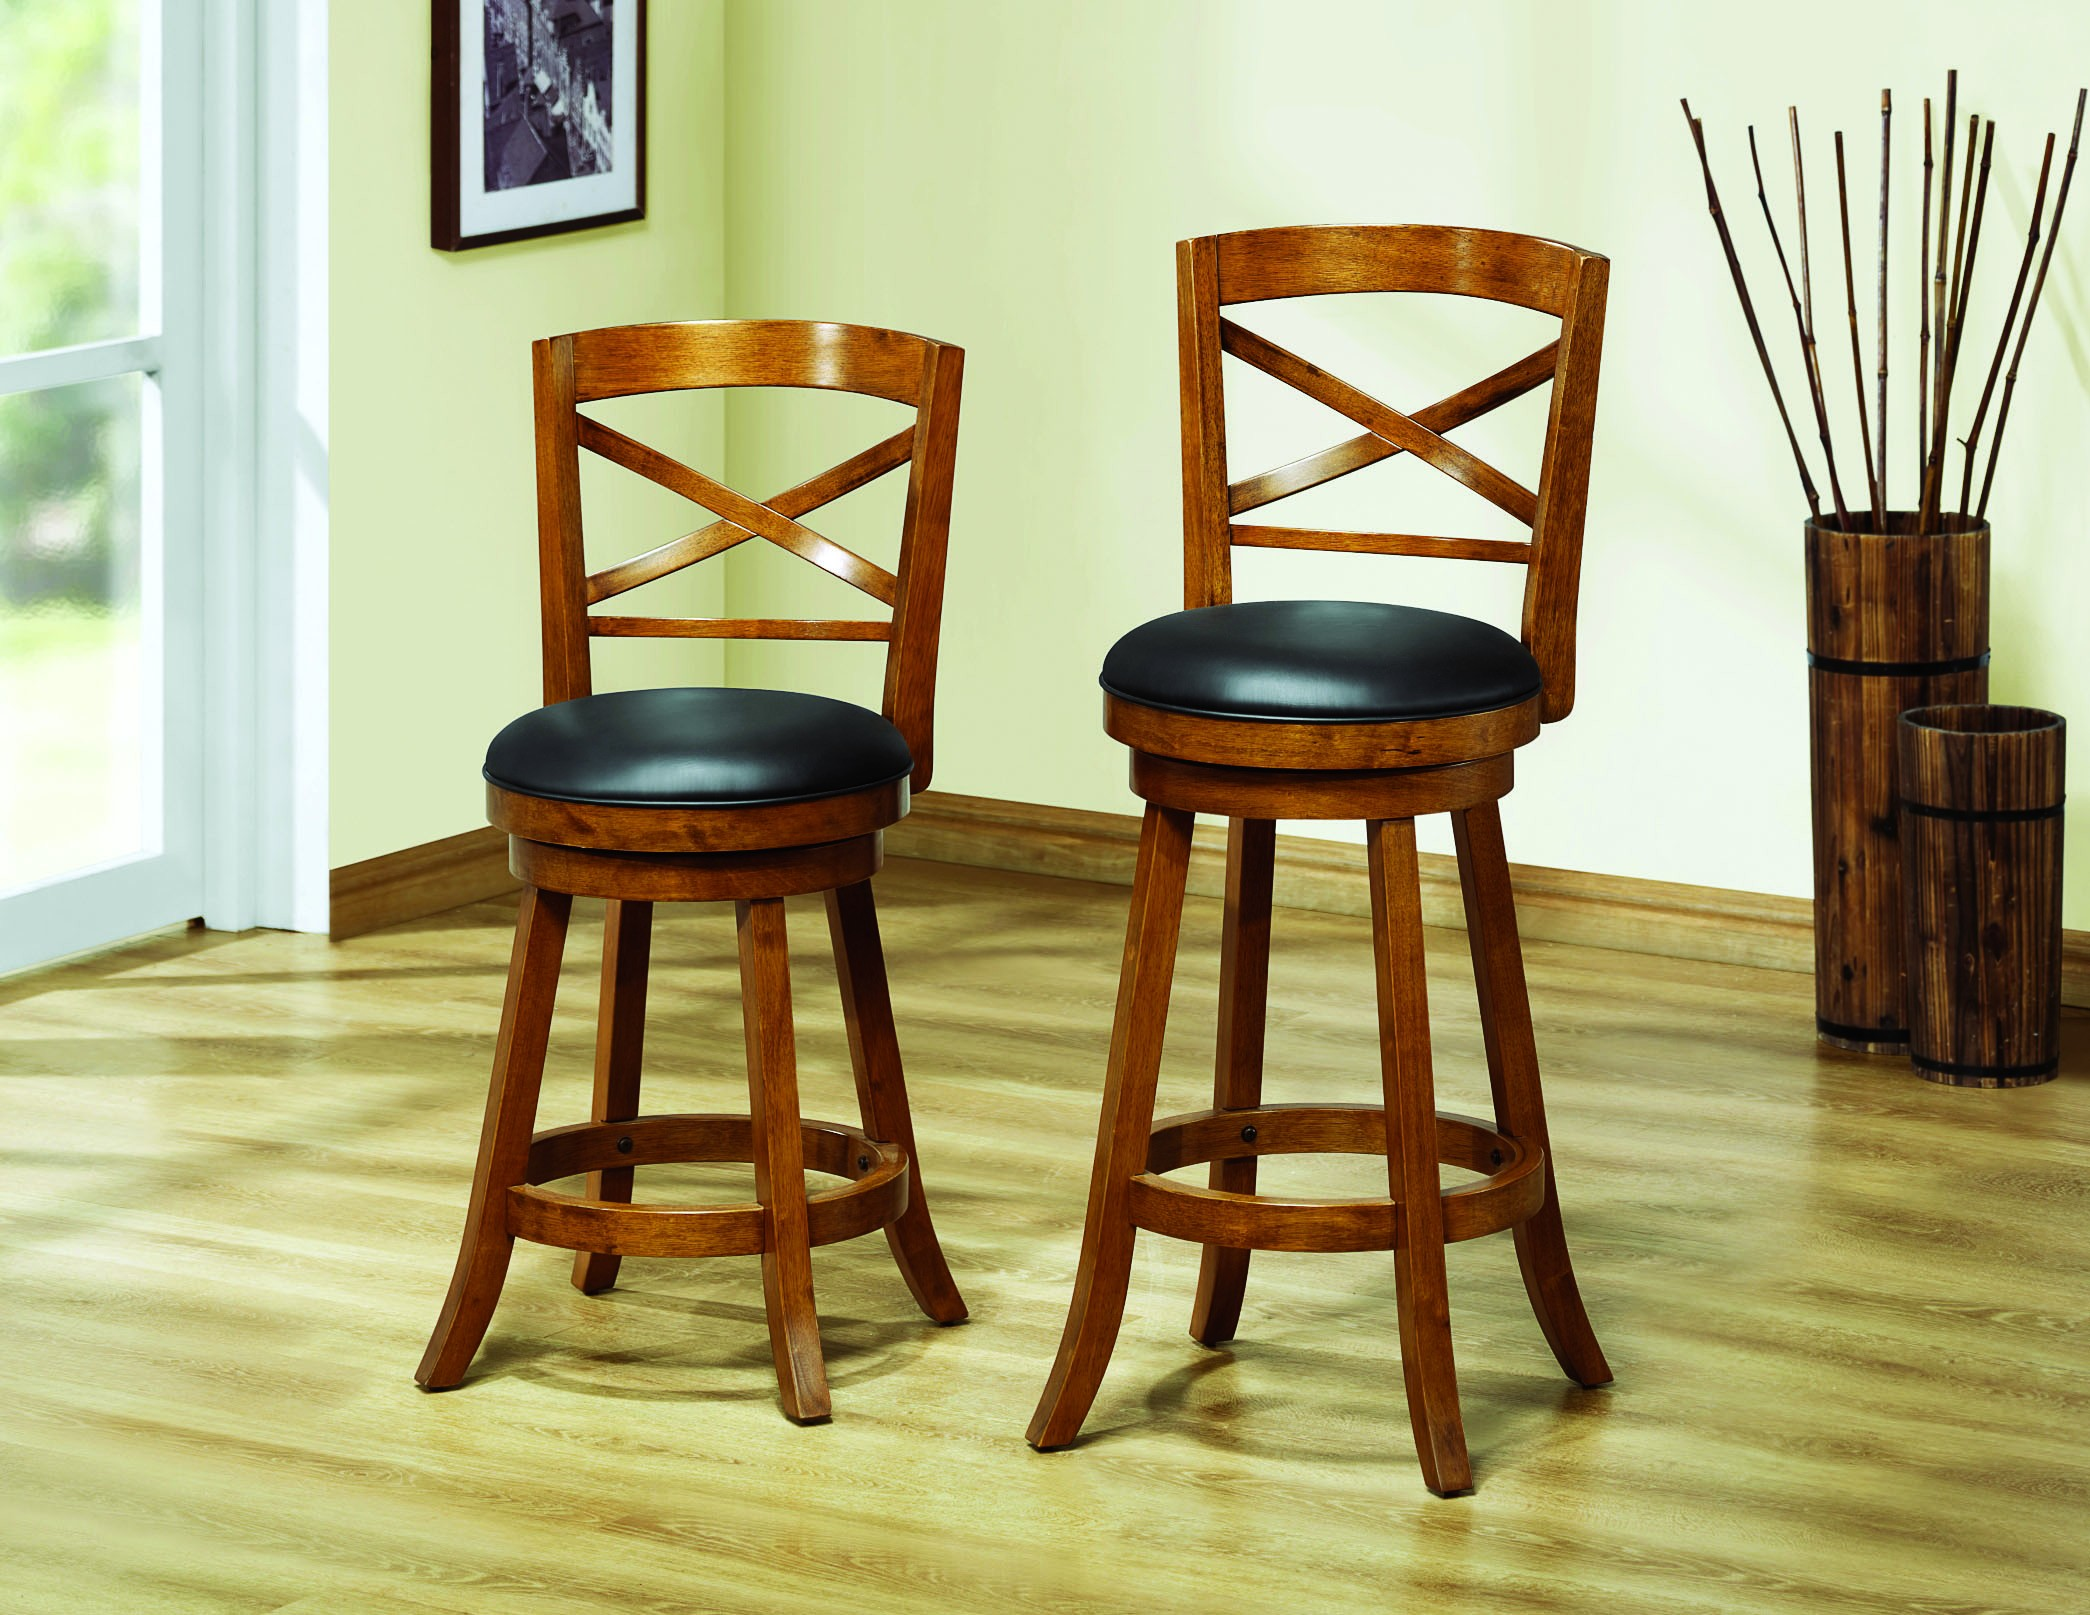 Wonderful image of 1254 Dark Oak Solid Wood 39 Swivel Counter Stool Set of 2 I 1254  with #713809 color and 2090x1615 pixels